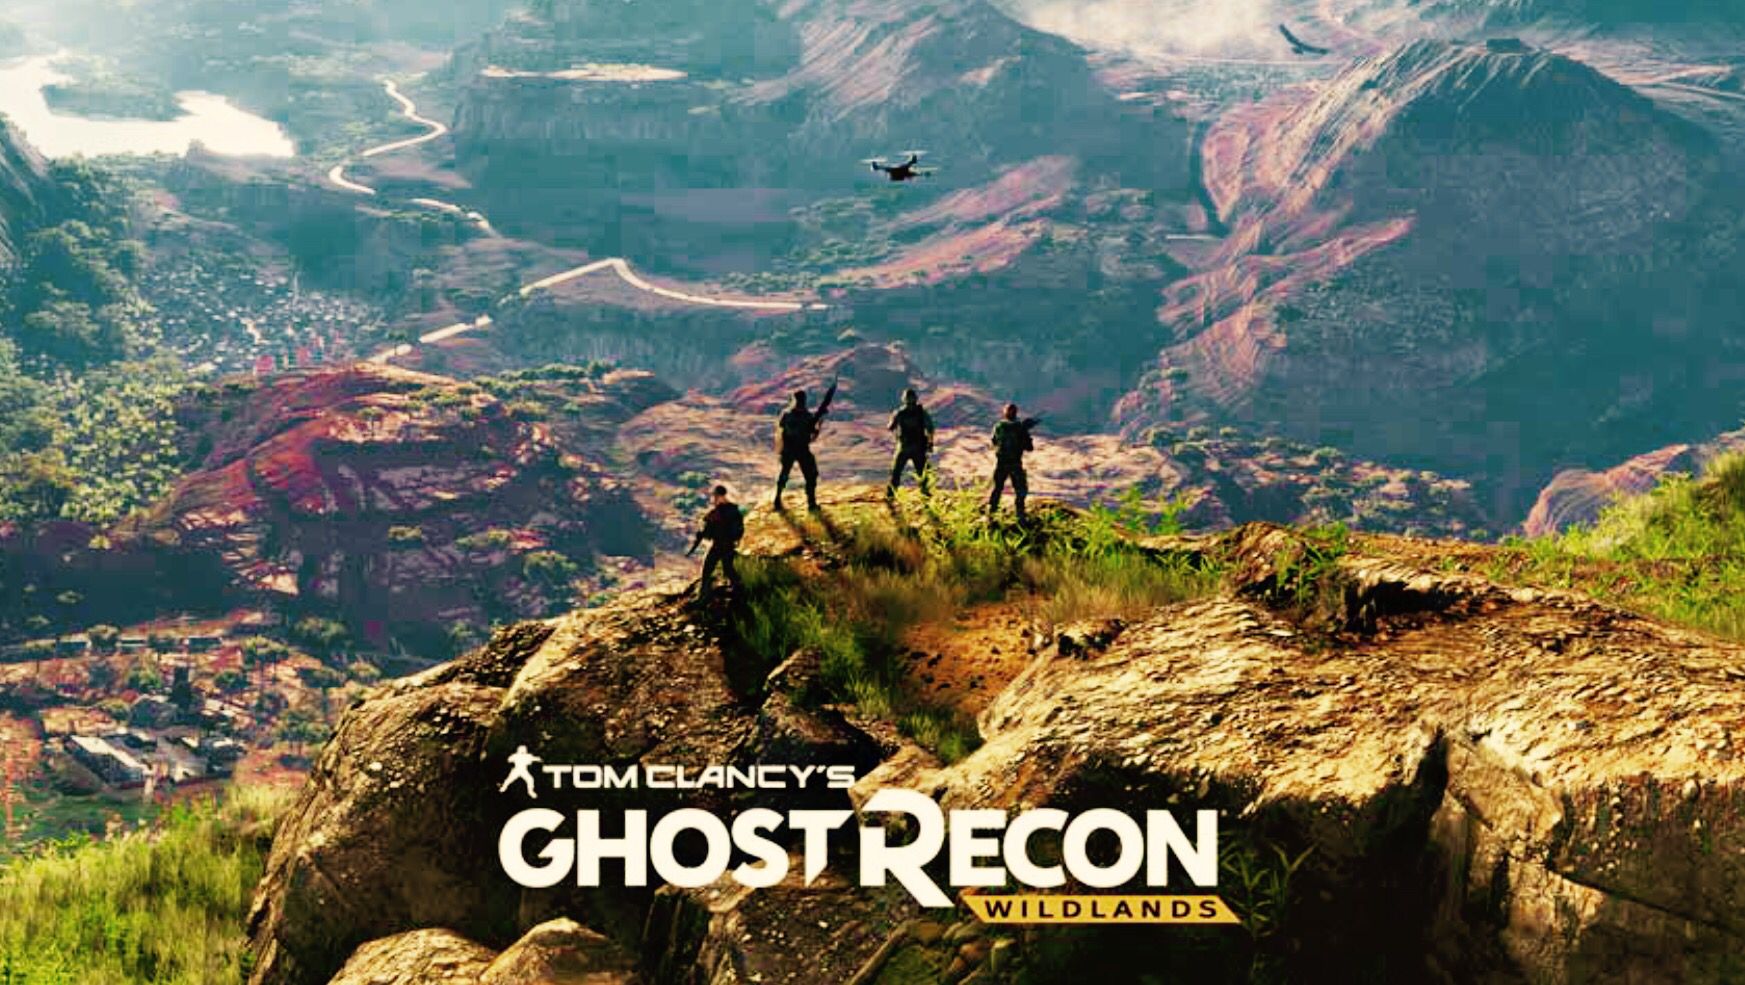 Ghost Recon Wildlands Parachuting Wallpaper 10222: GHOST RECON WILDLANDS Cartel Cinematic Is One Wild Ride